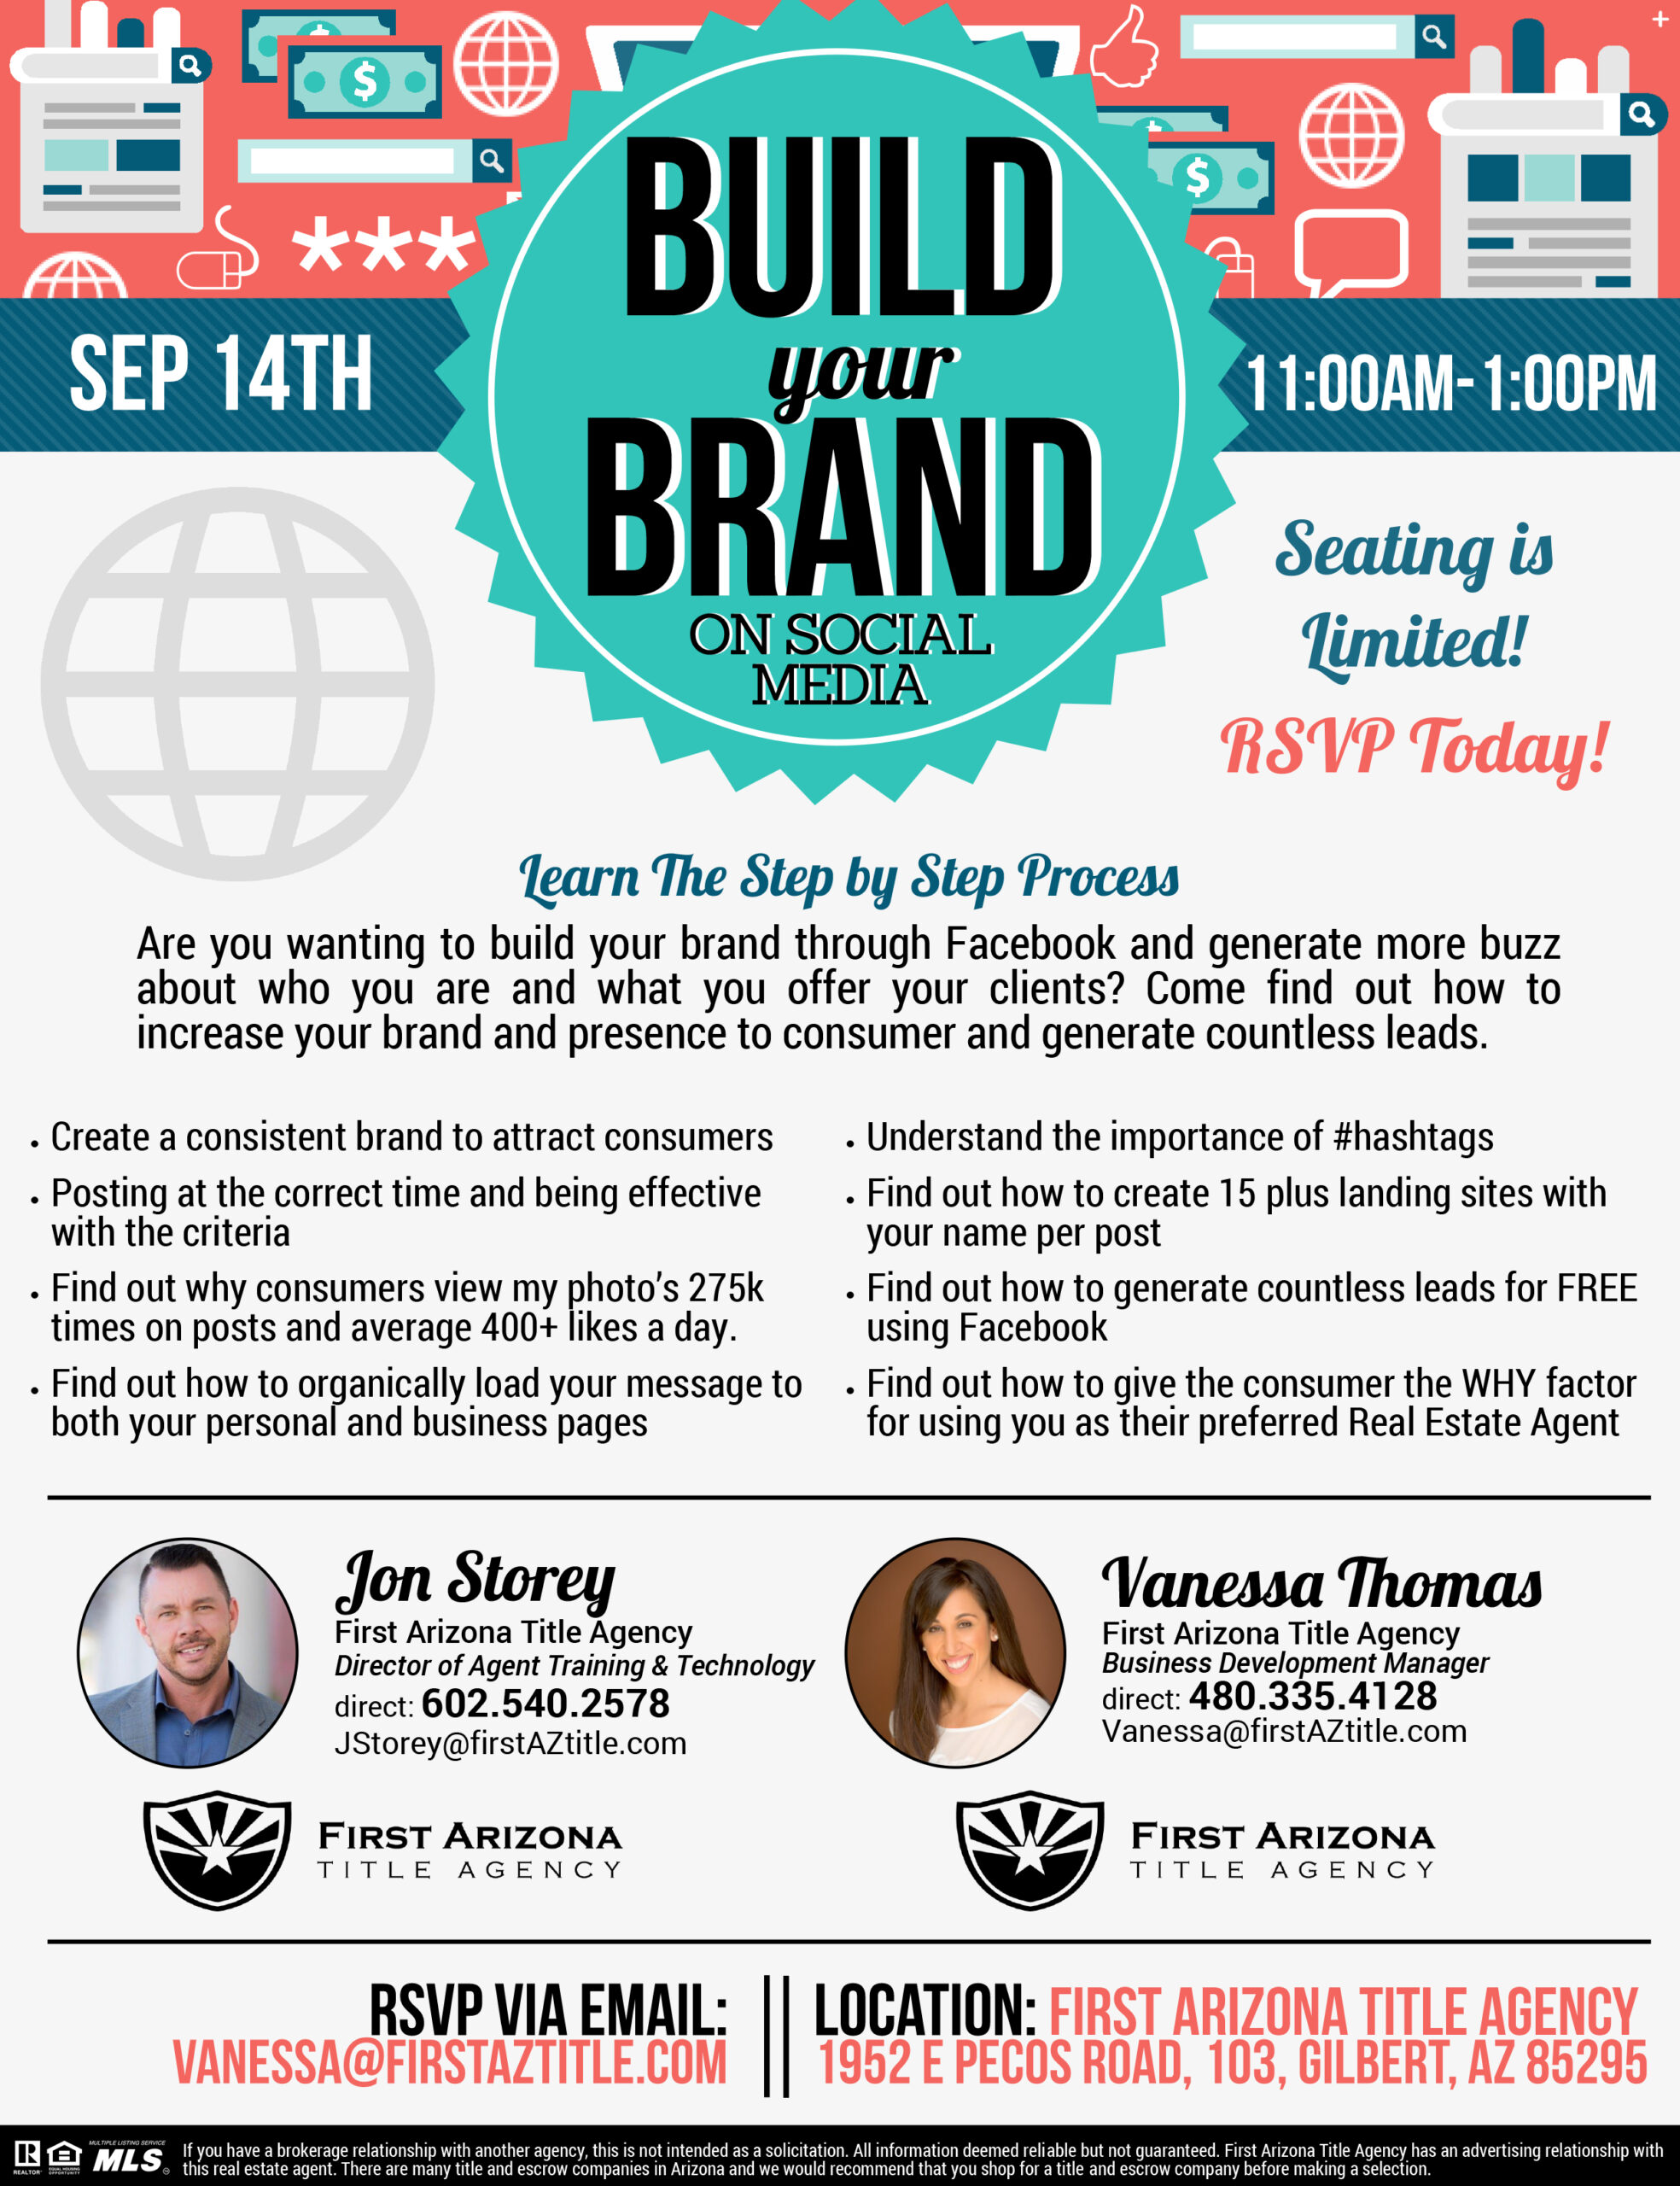 Build your Brand on Social Media - First Arizona Title Agency